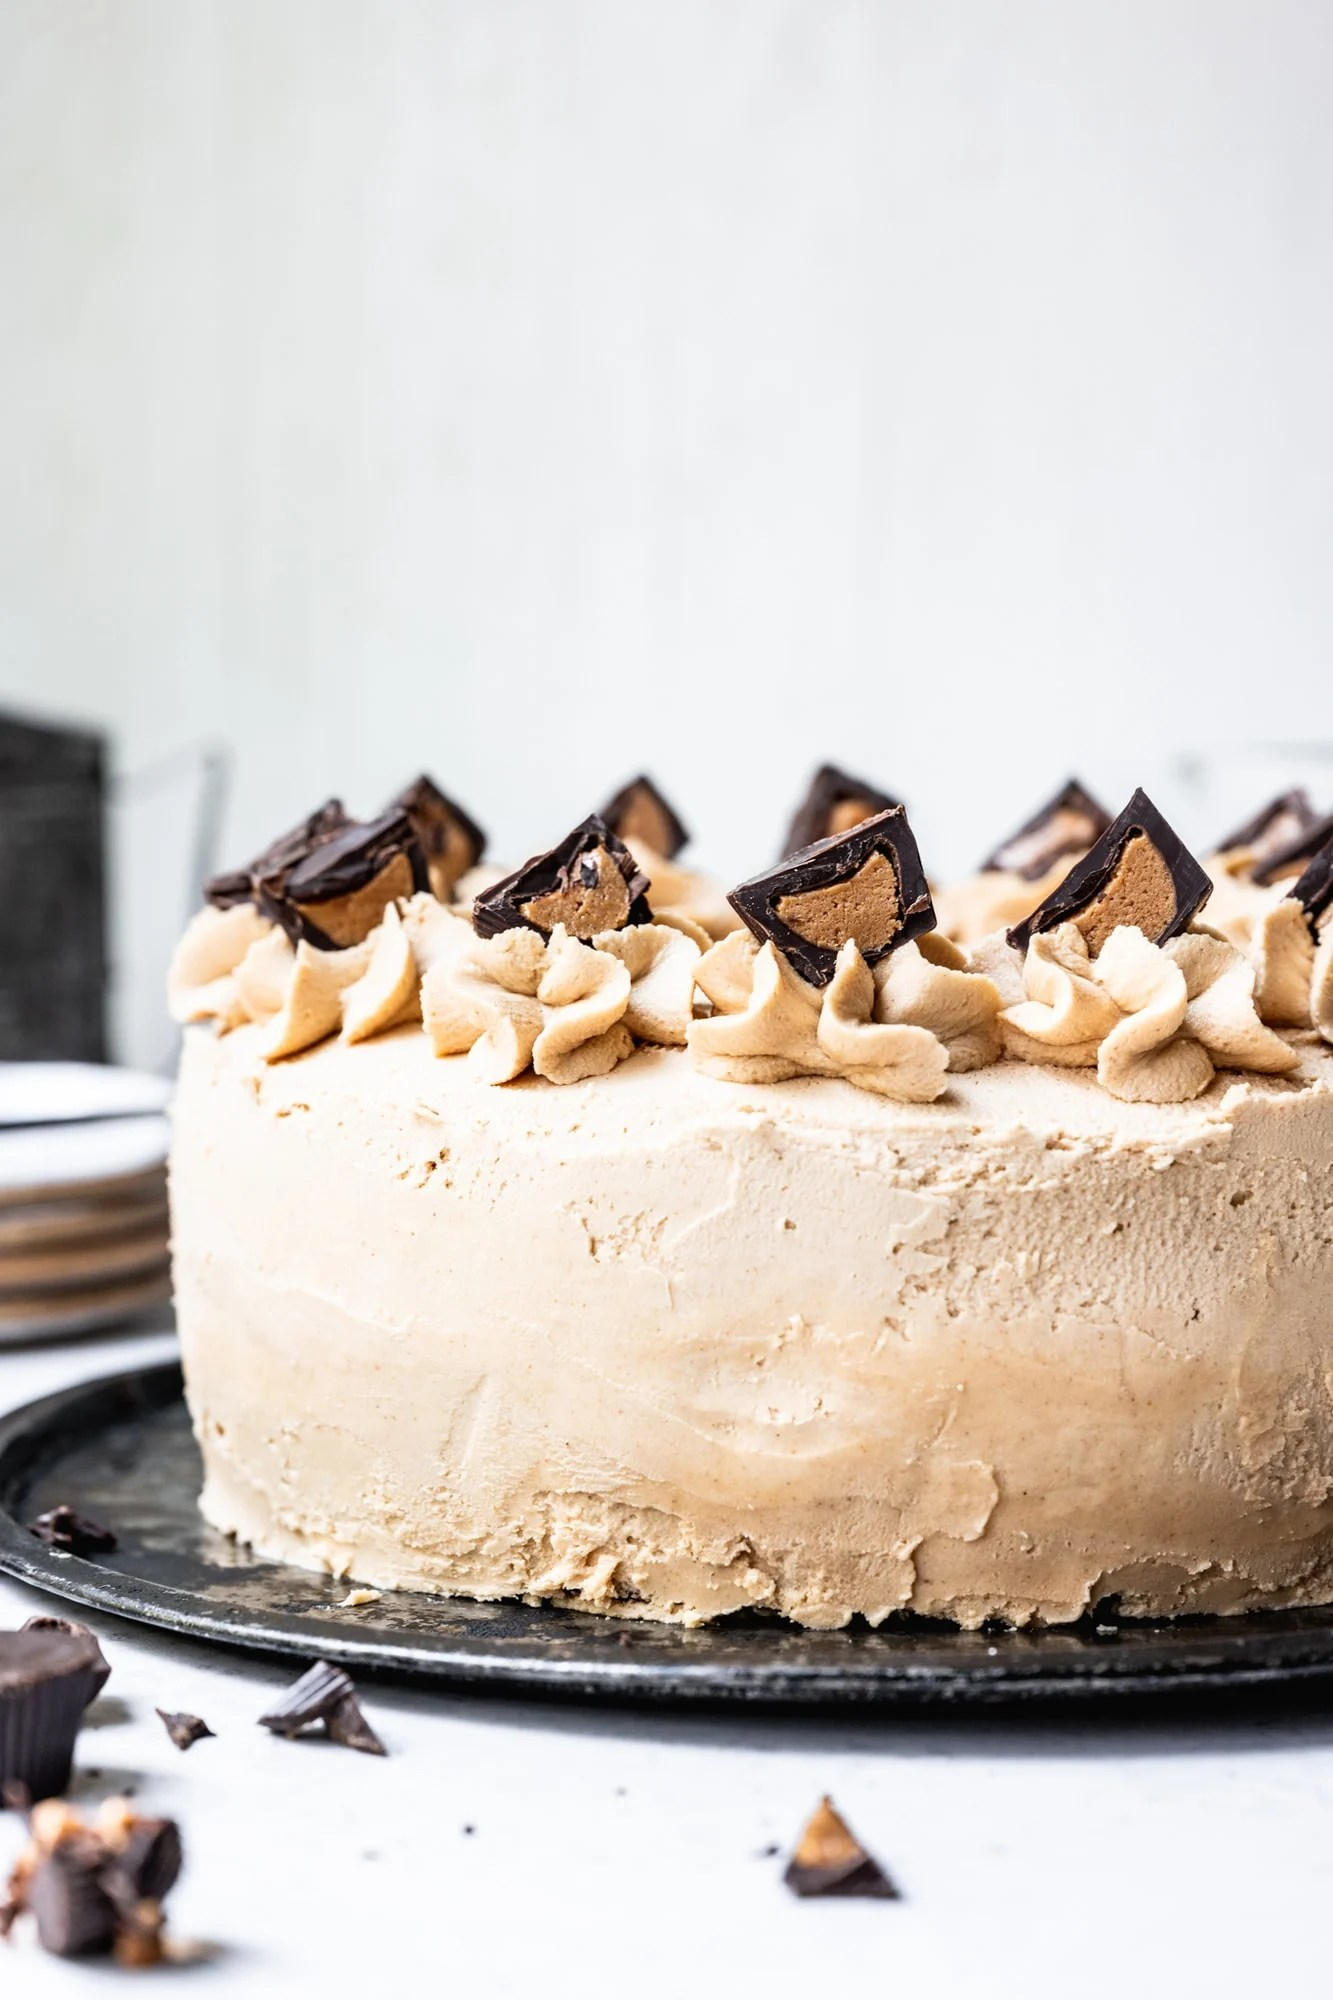 side view of vegan peanut butter ice cream cake